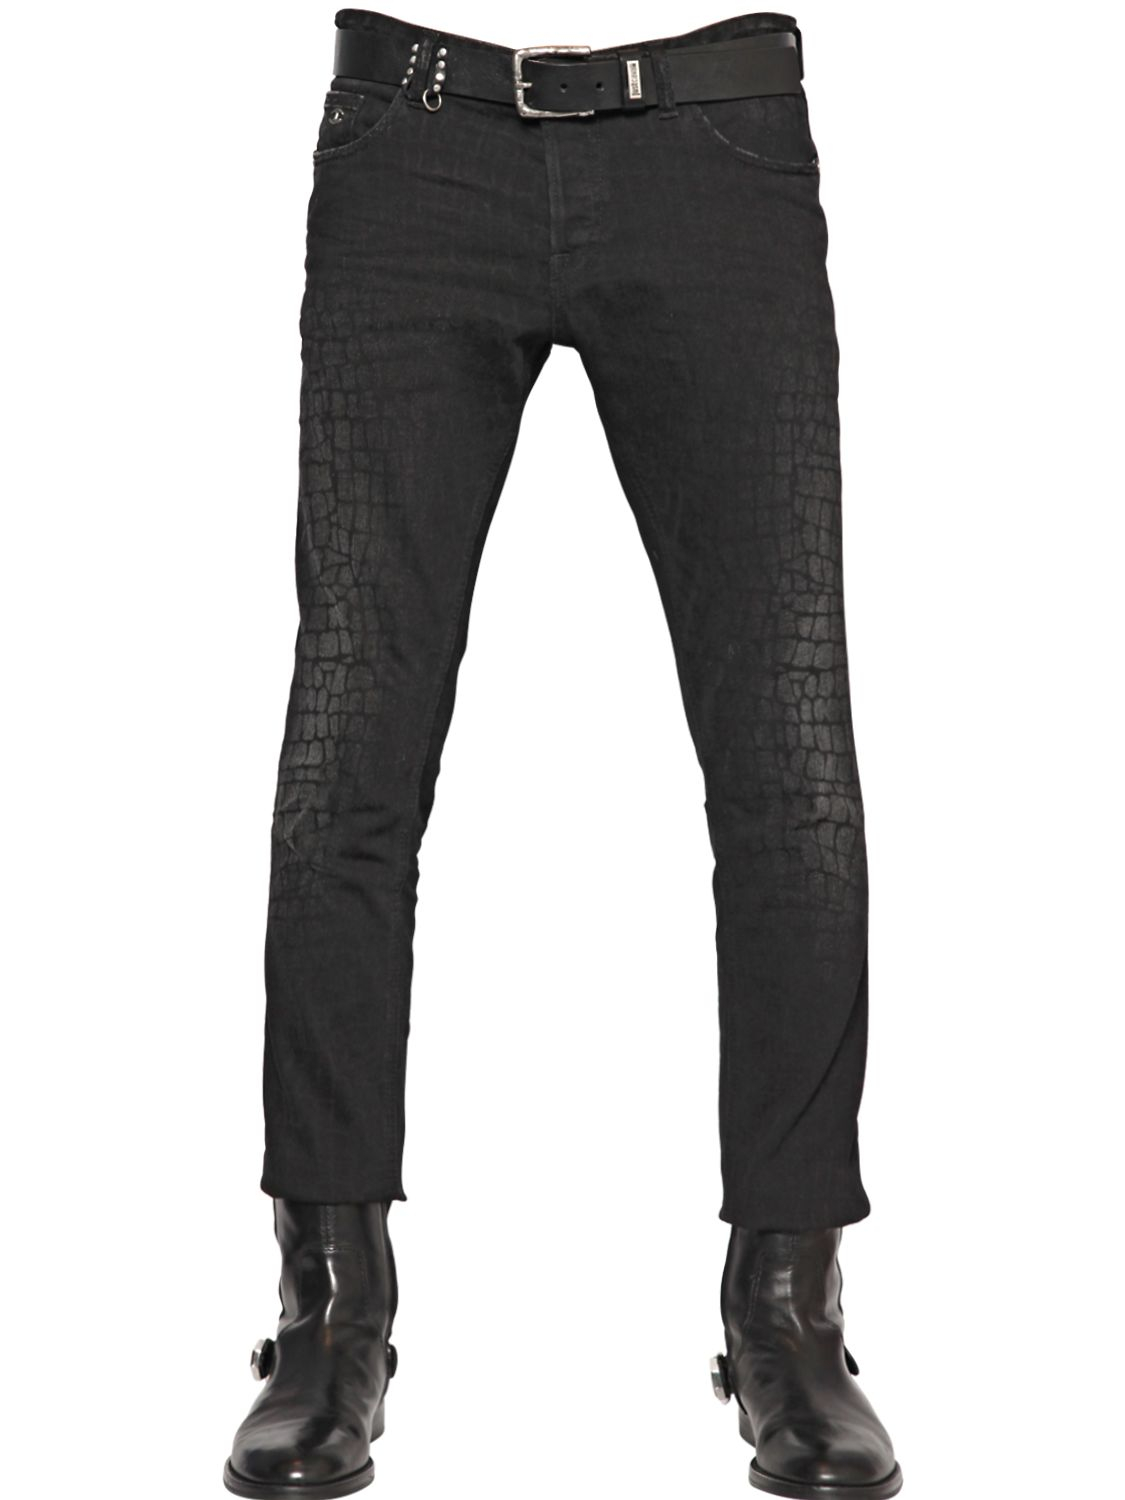 regular jeans - Black Just Cavalli